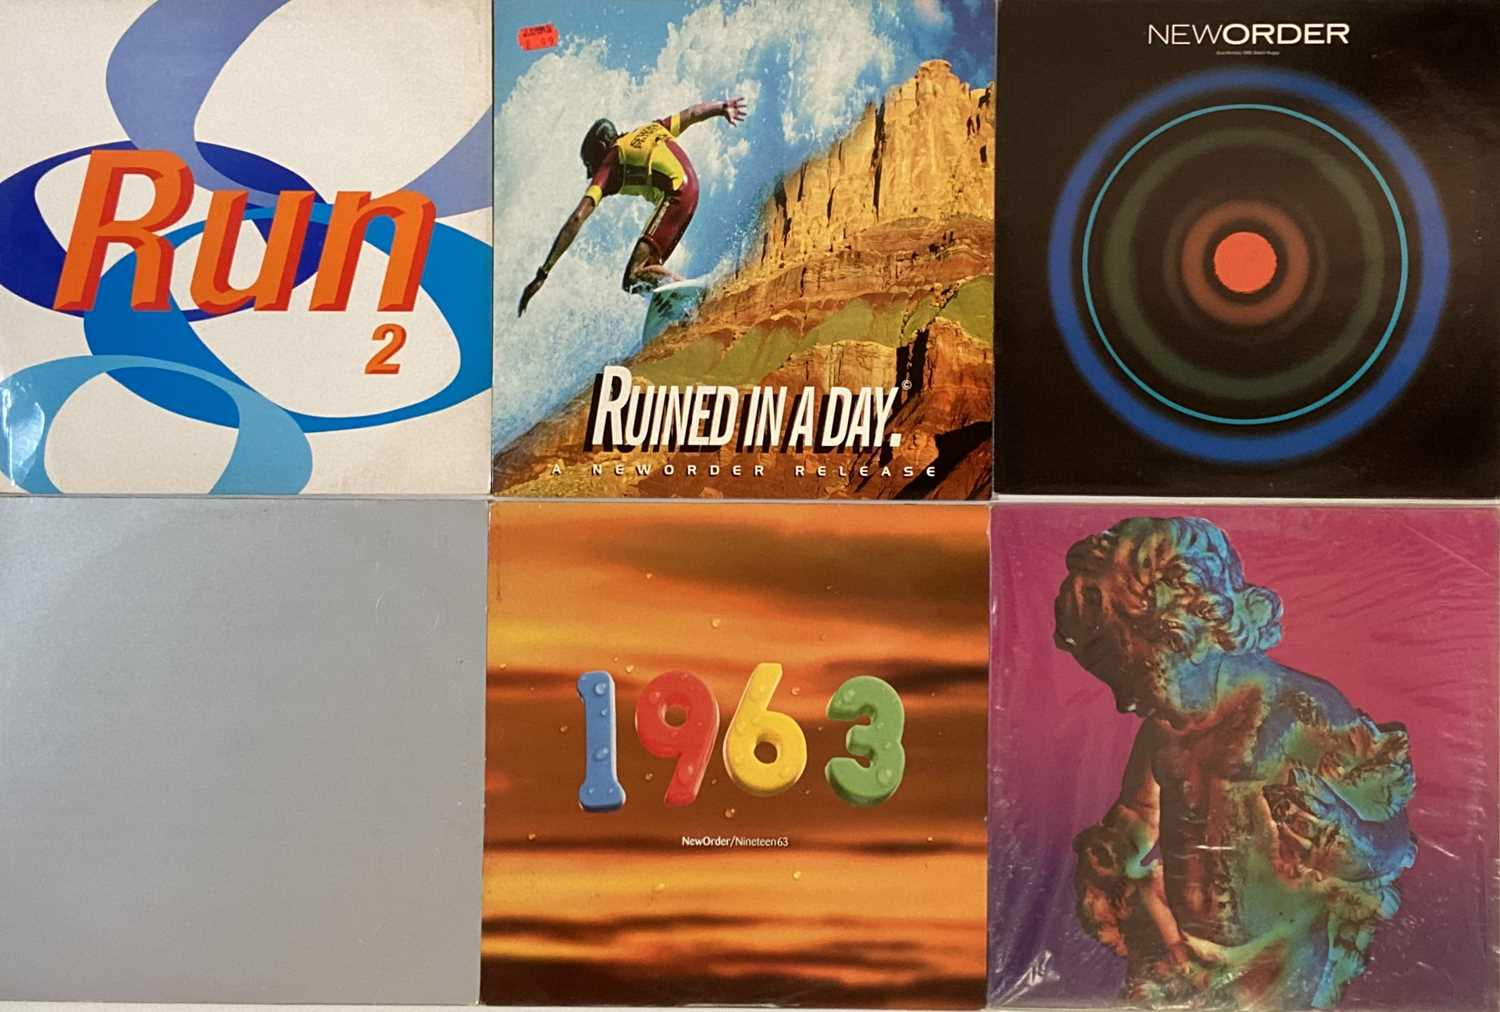 """NEW ORDER - LPs/ 12"""" - Image 2 of 5"""